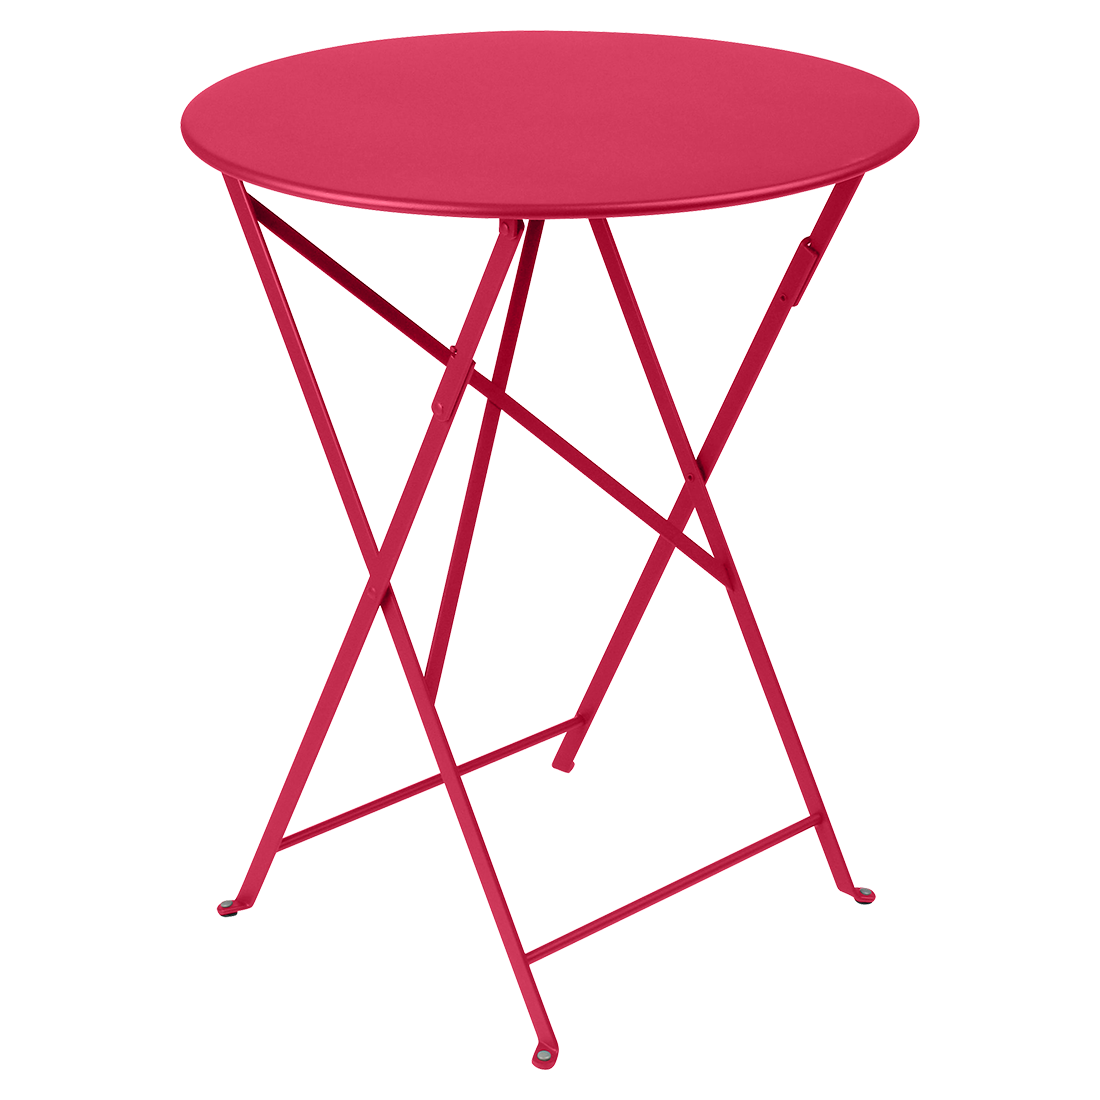 petite table metal, table de jardin fermob, table bistro, petite table pliante, table rose